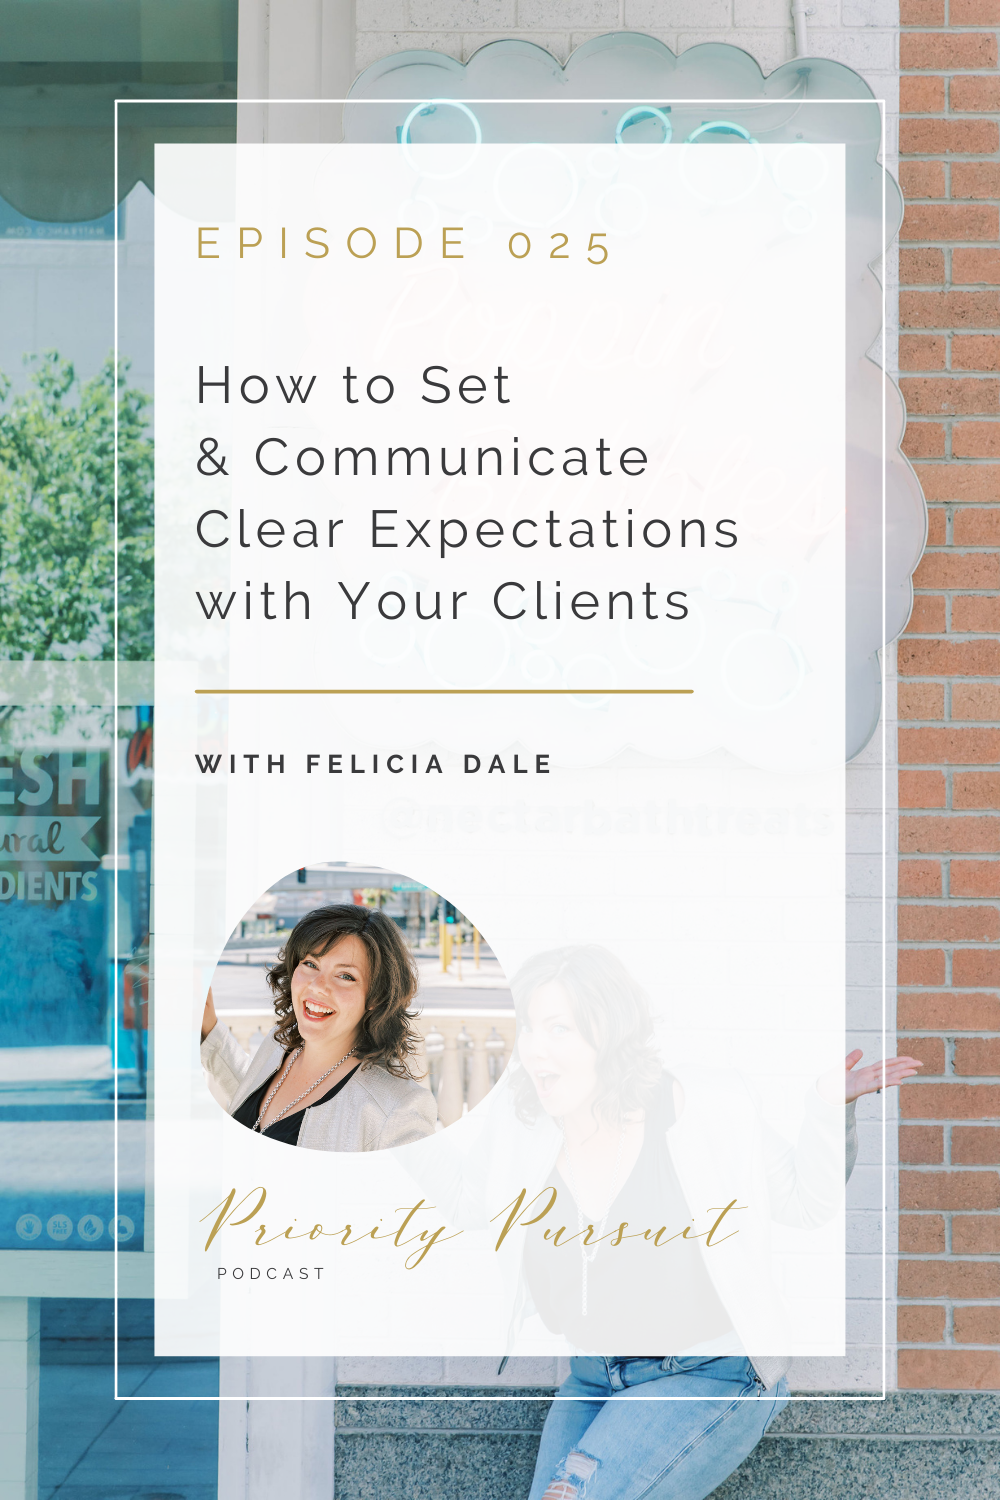 Victoria Rayburn and Felicia Dale discuss how to set and communicate clear expectations with your clients.